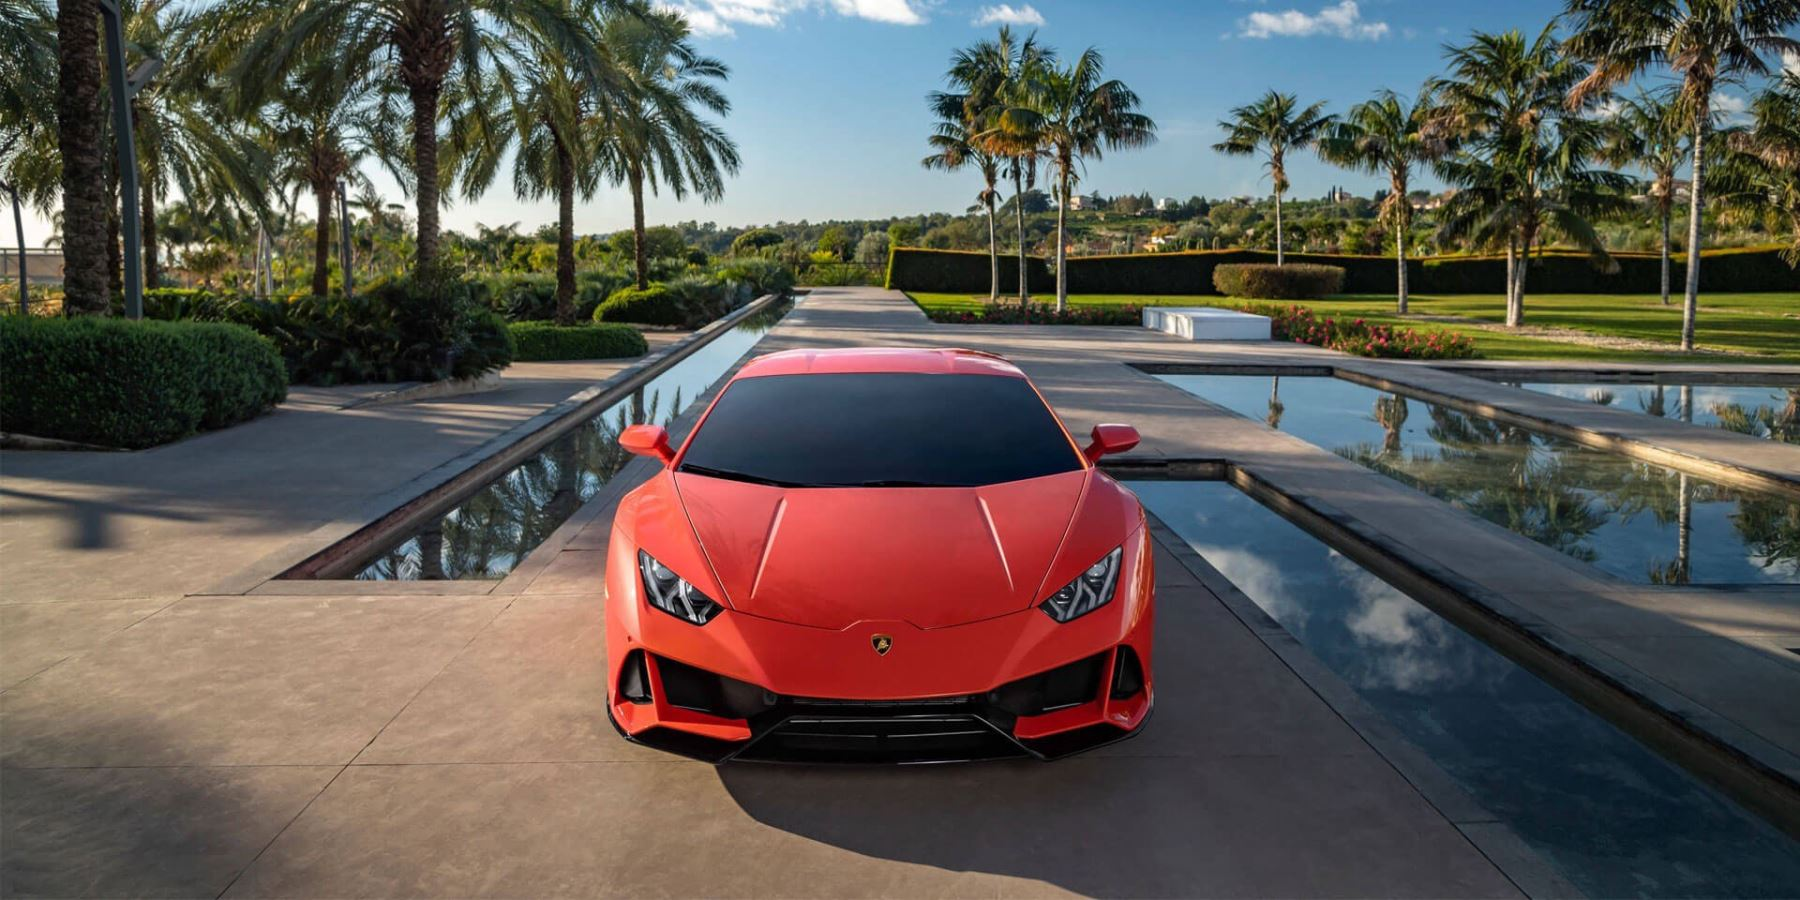 Lamborghini Huracan EVO - Every Day Amplified image 3